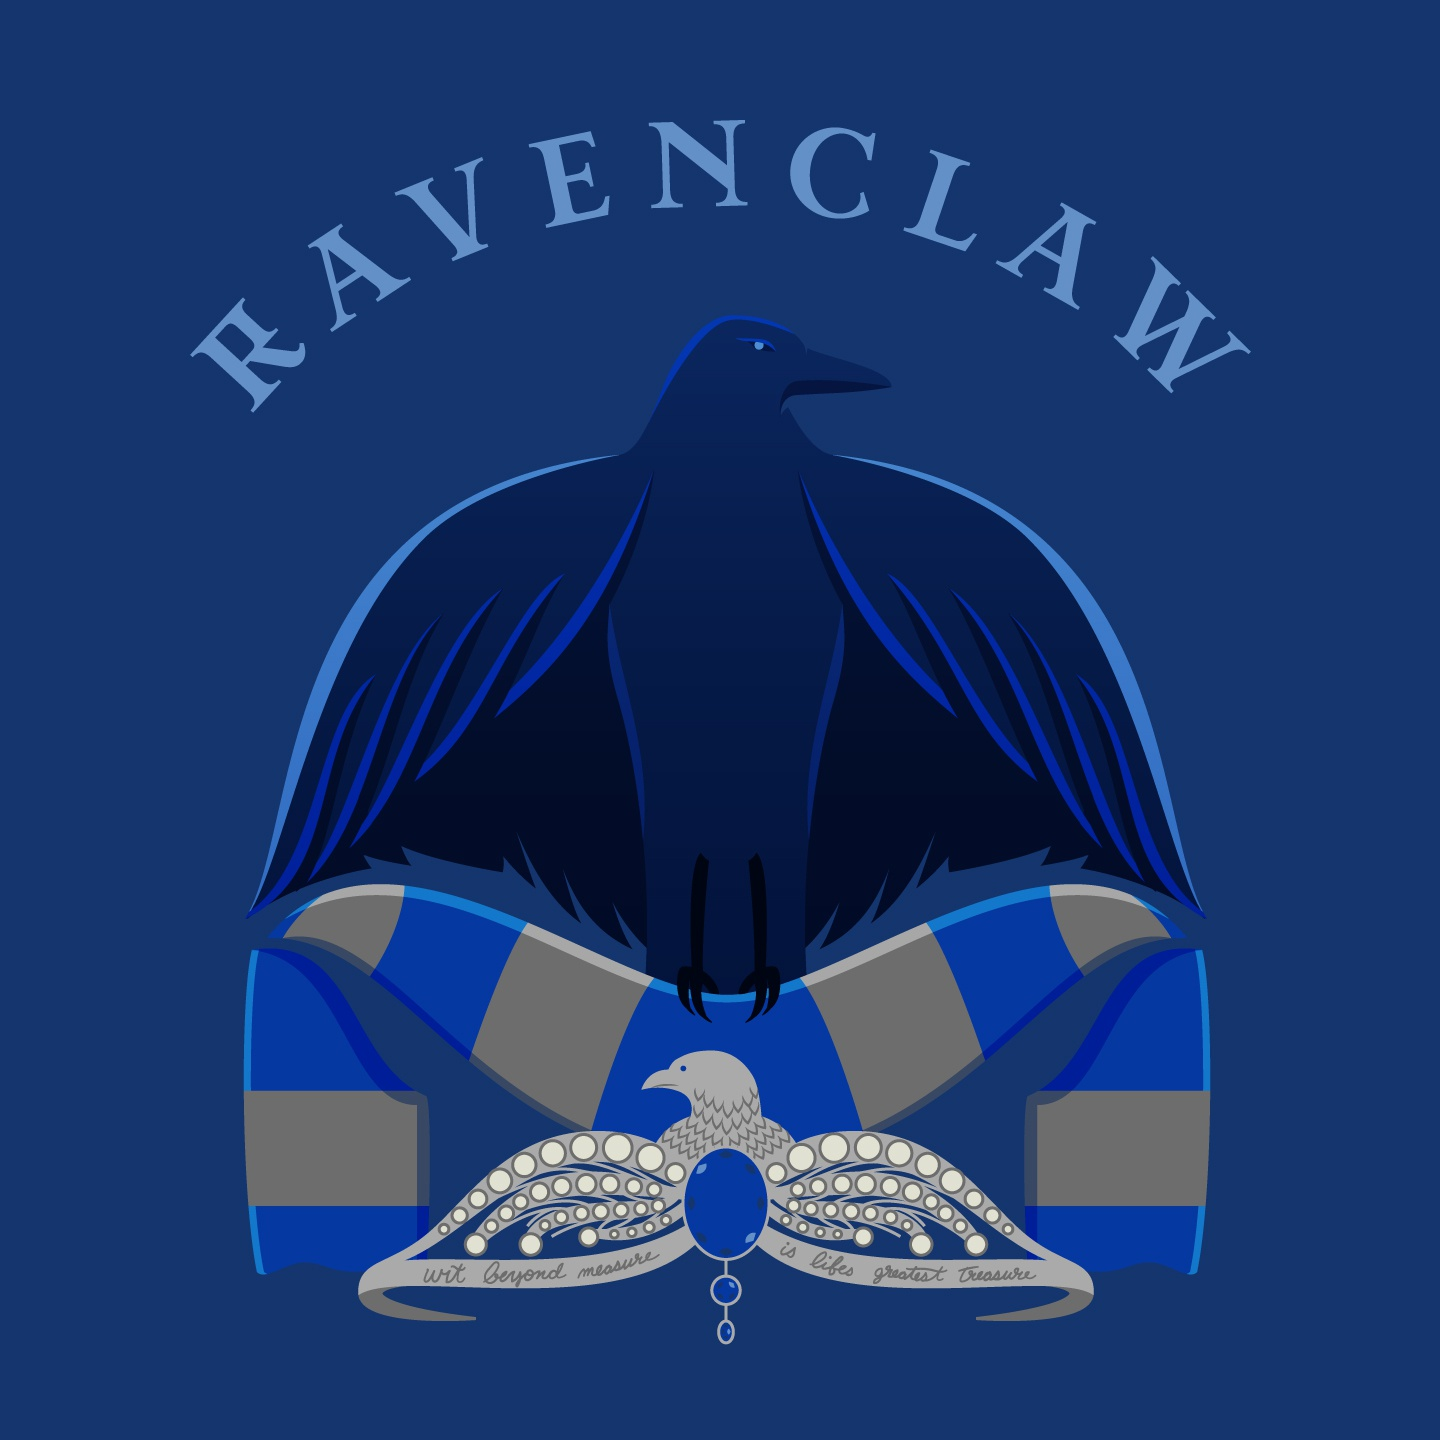 44 ravenclaw badge text